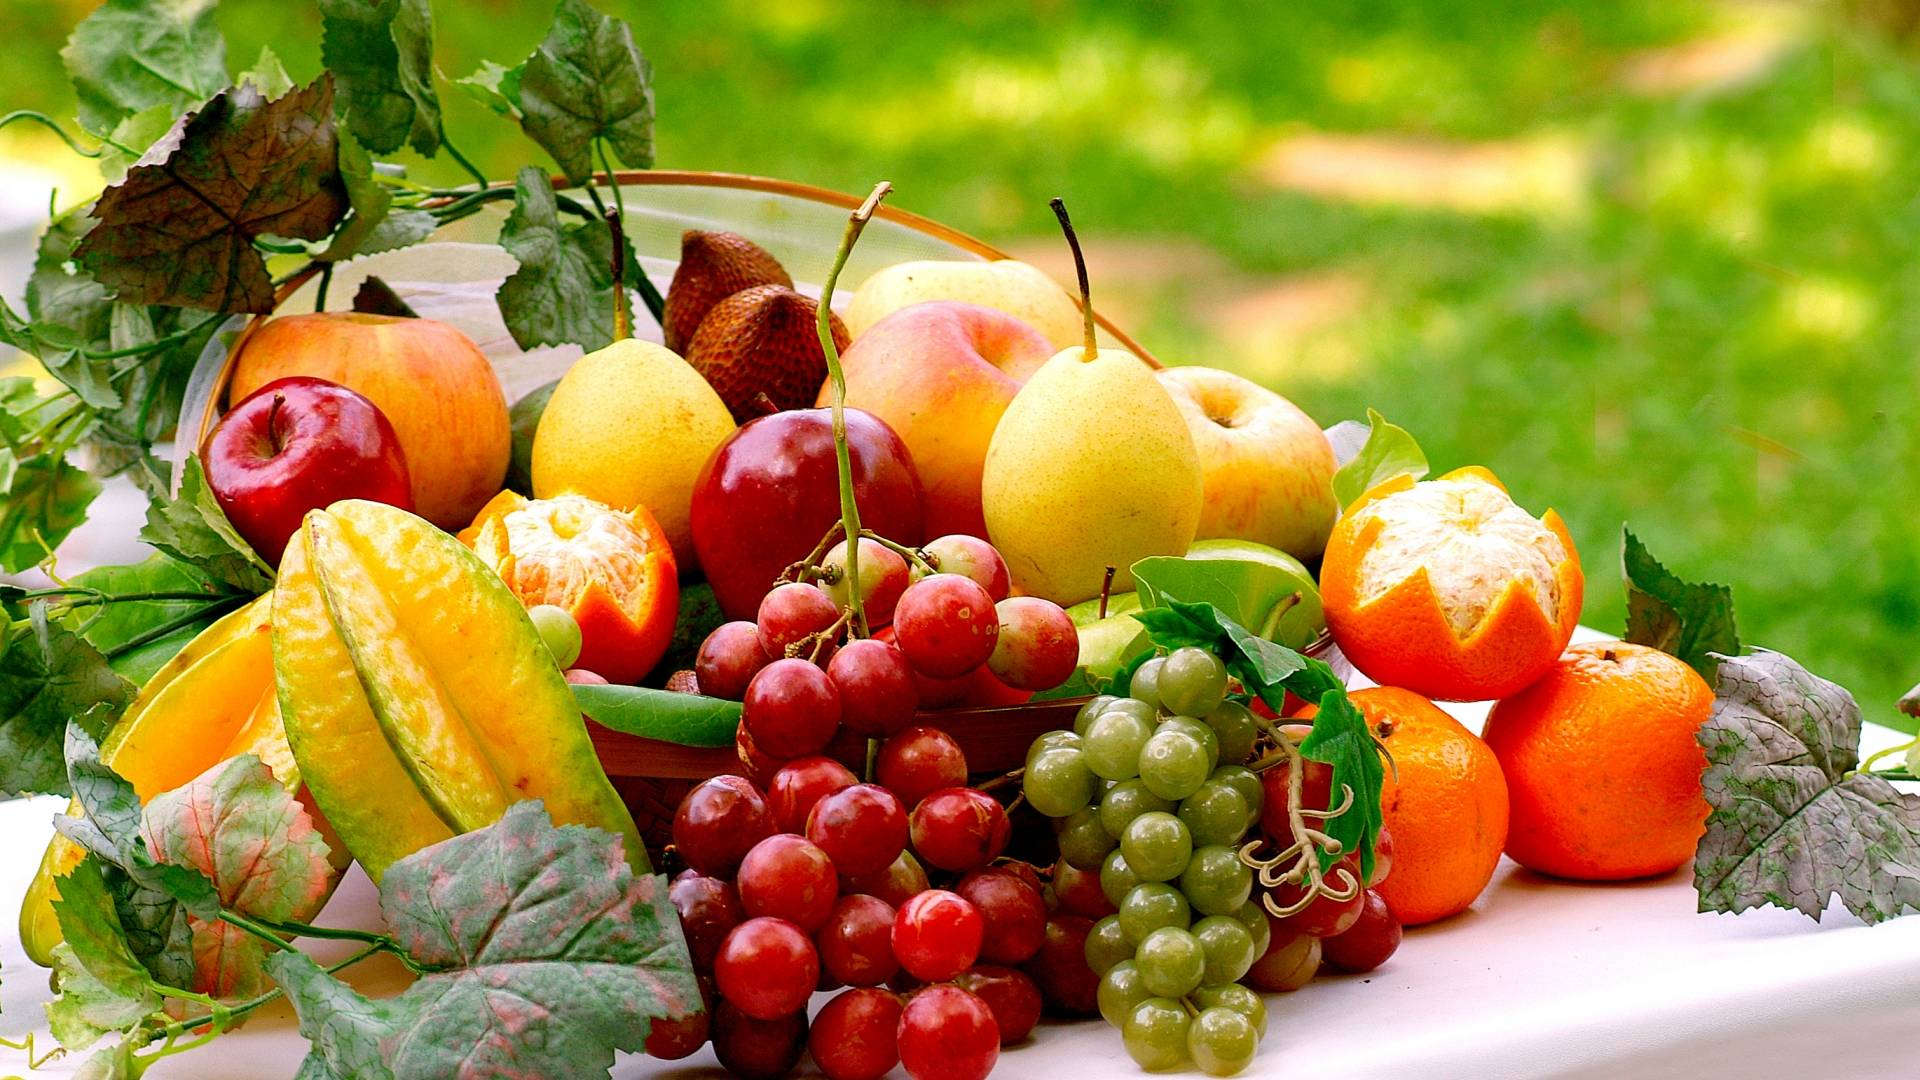 All the fruits wallpaper - Fruit Salad With Ice Cream Wallpaper 1080p 8016 Wallpaper Aws